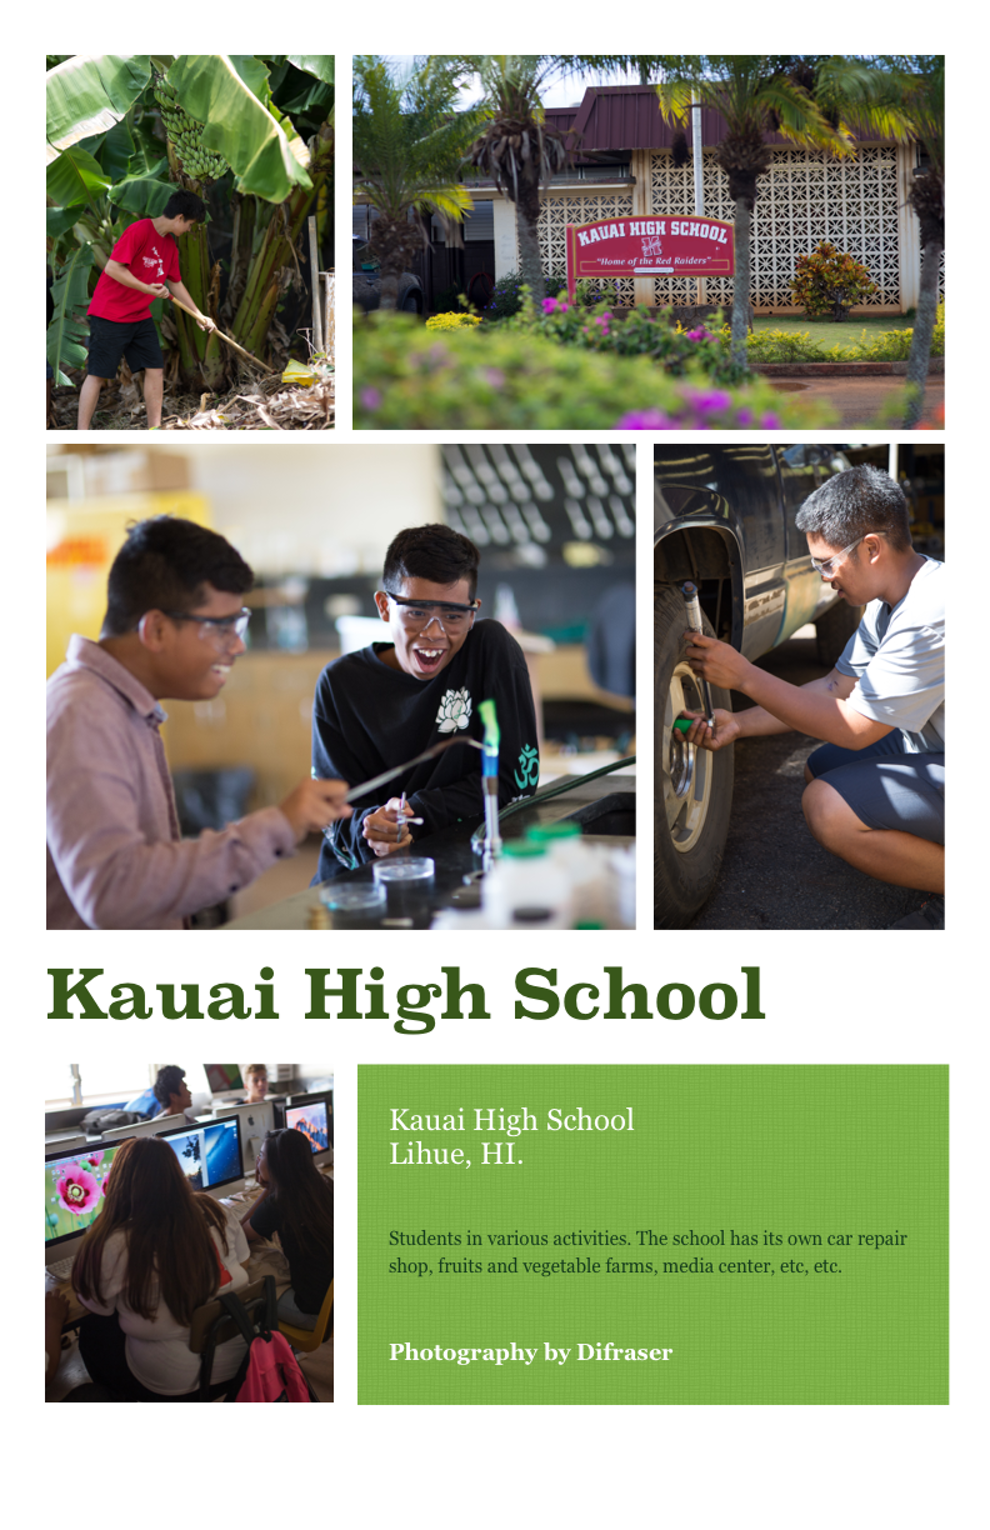 Kauai High School